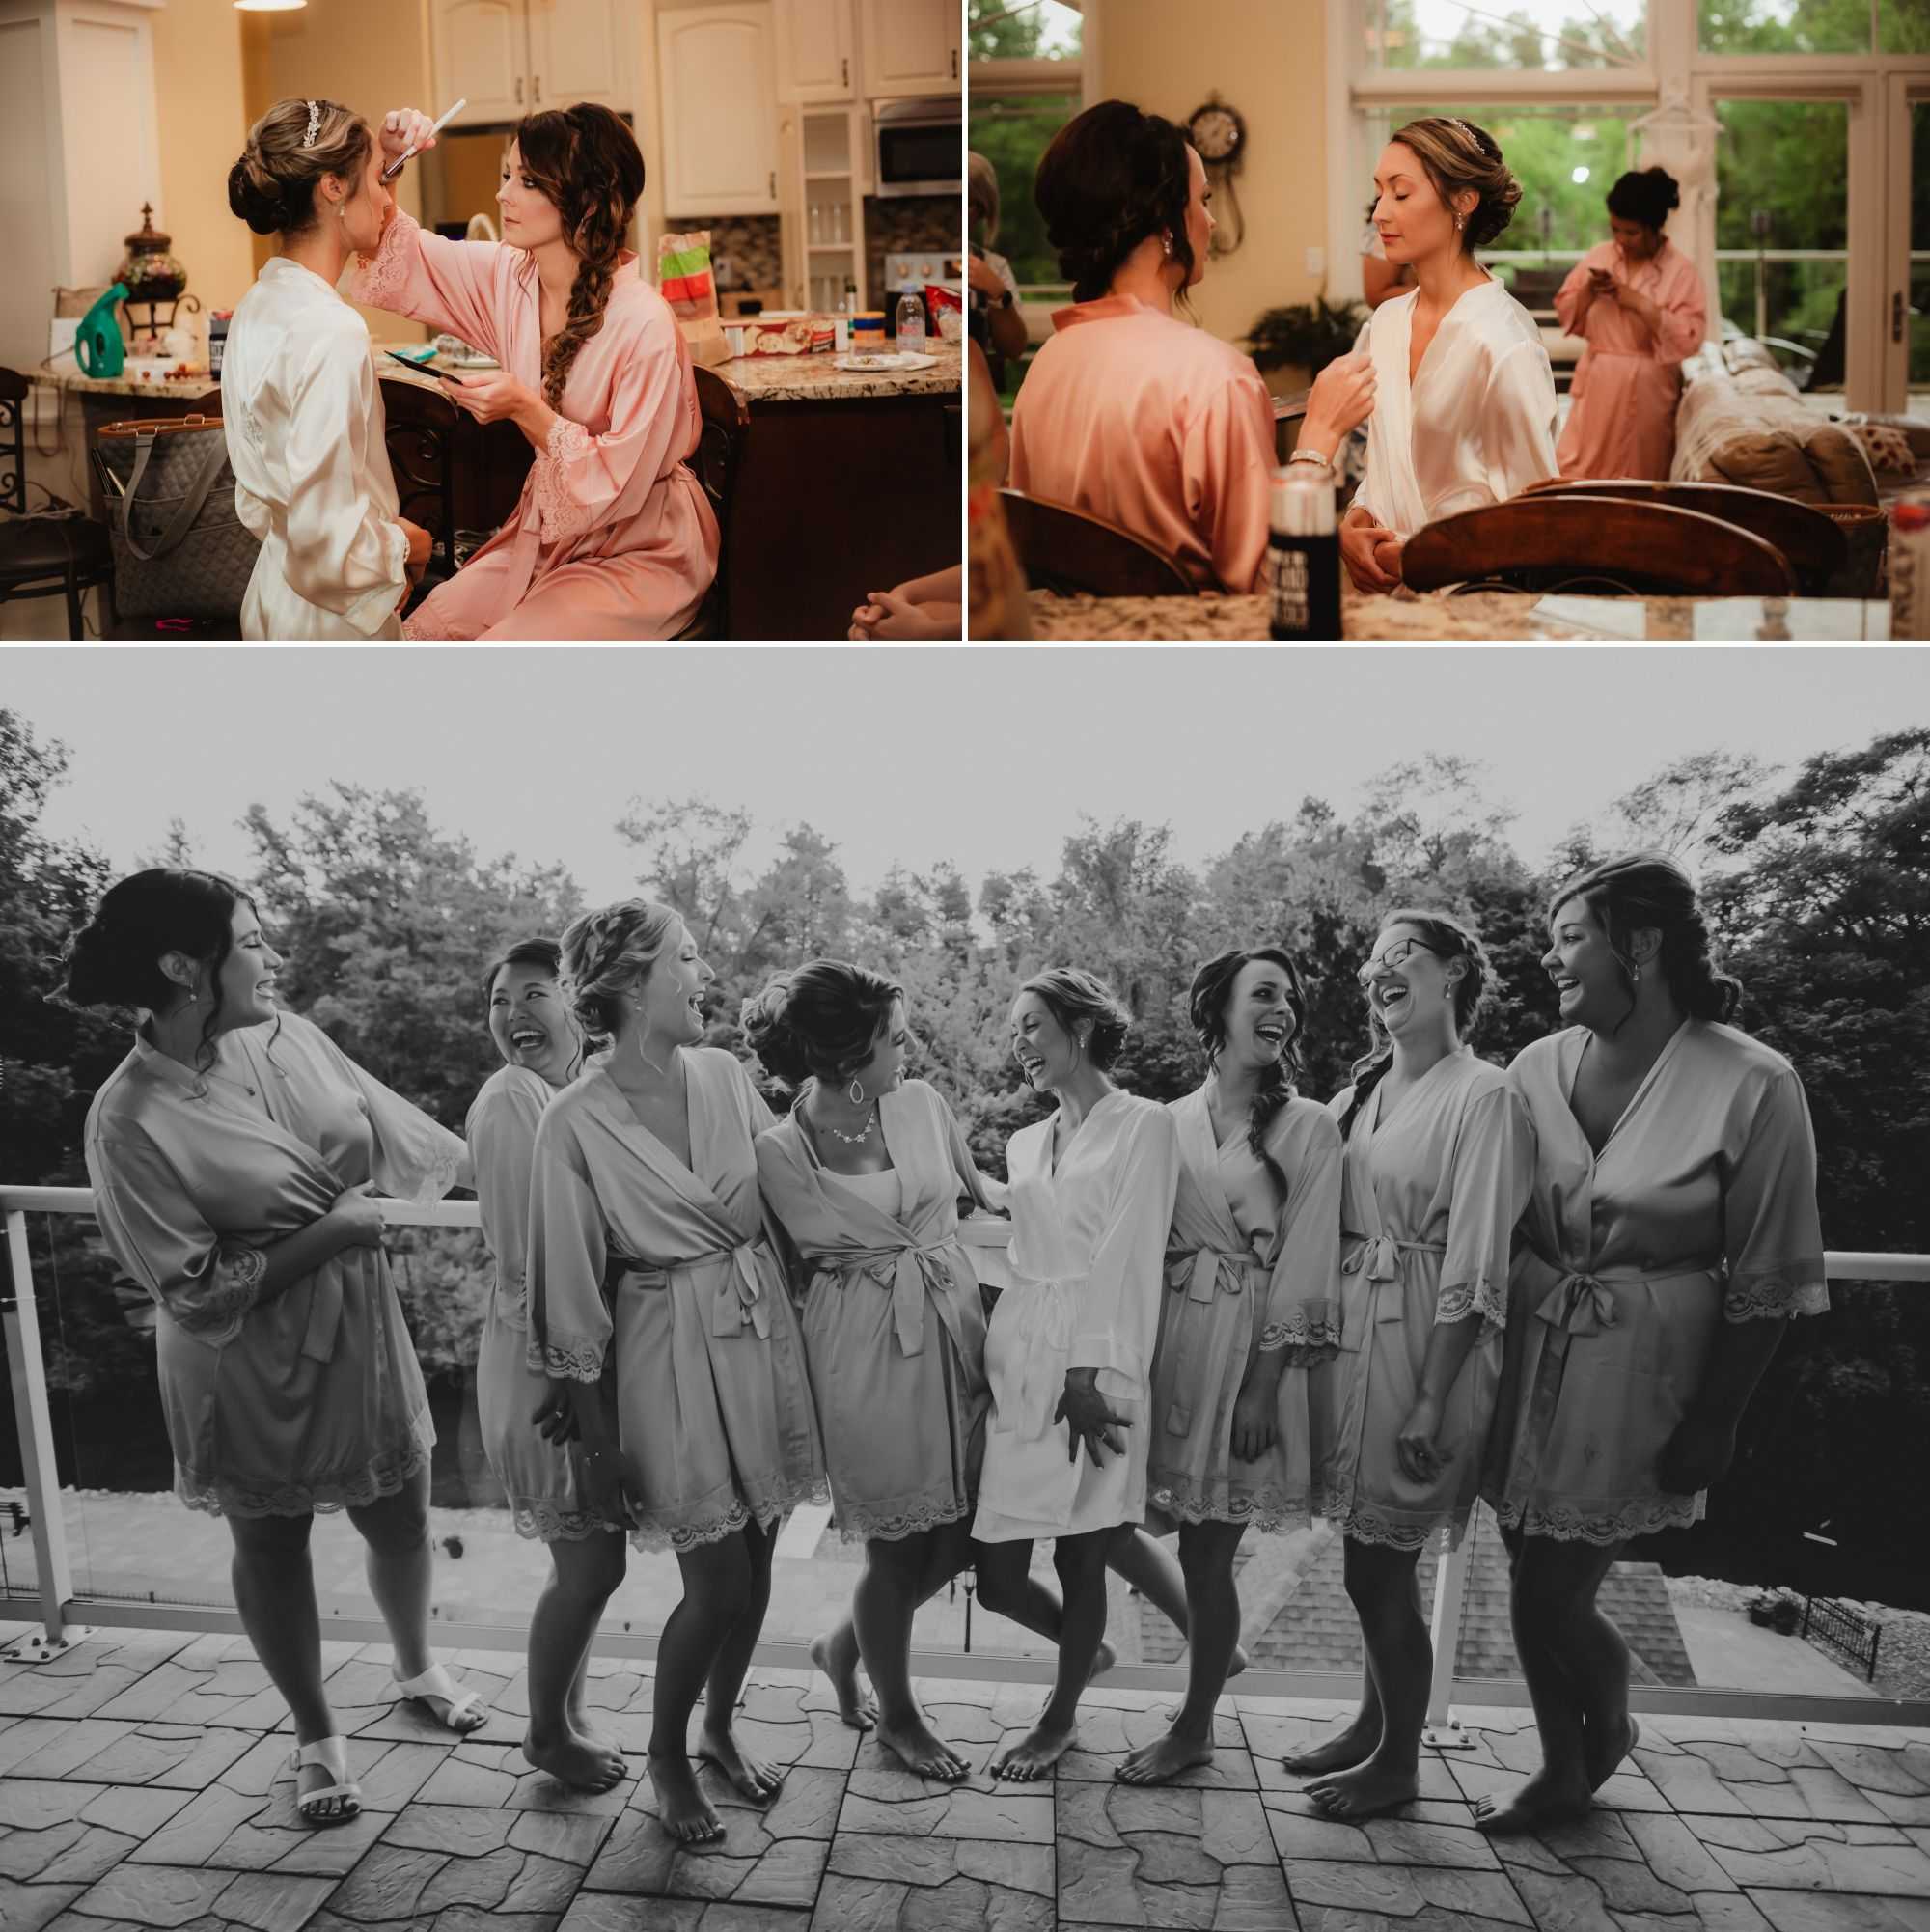 Photos of bride and bridesmaids in their robes getting ready and laughing.